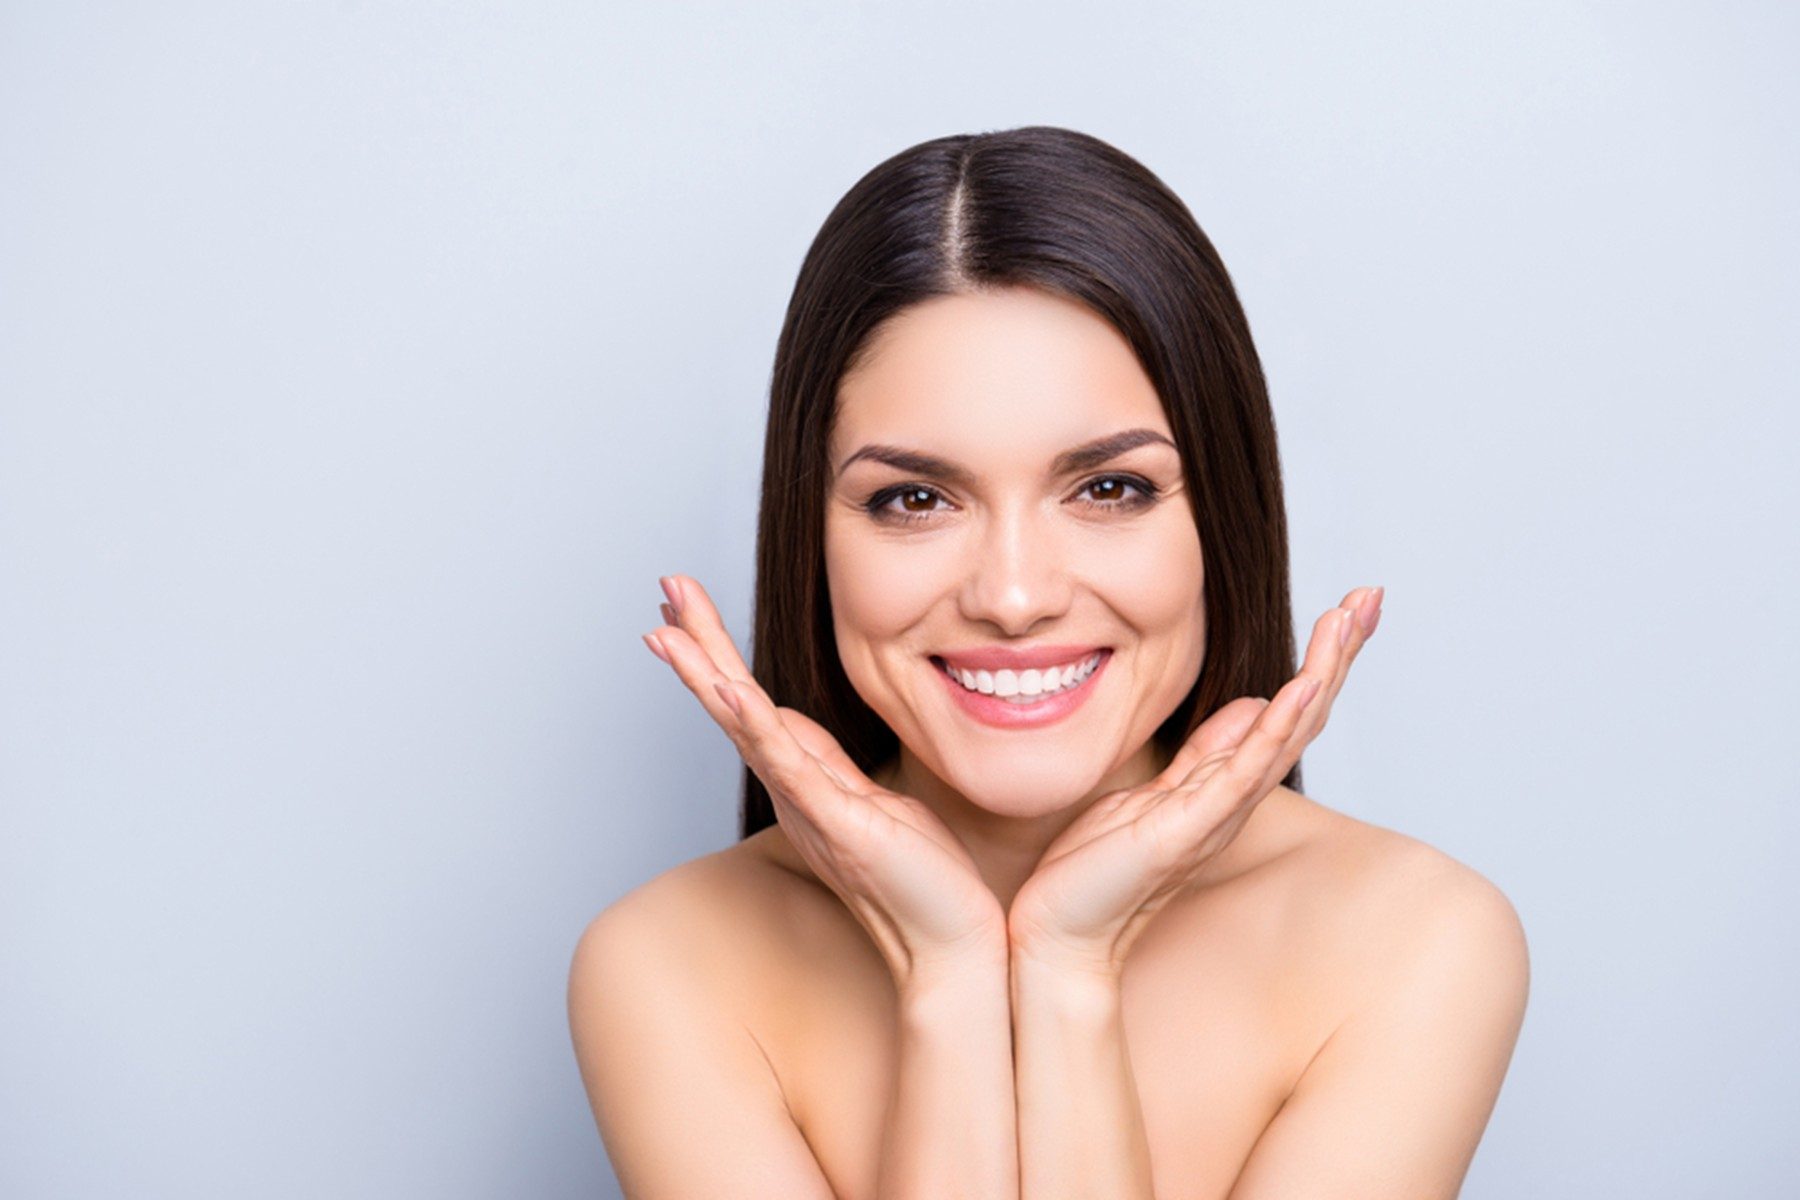 bridges for replacing your front teeth